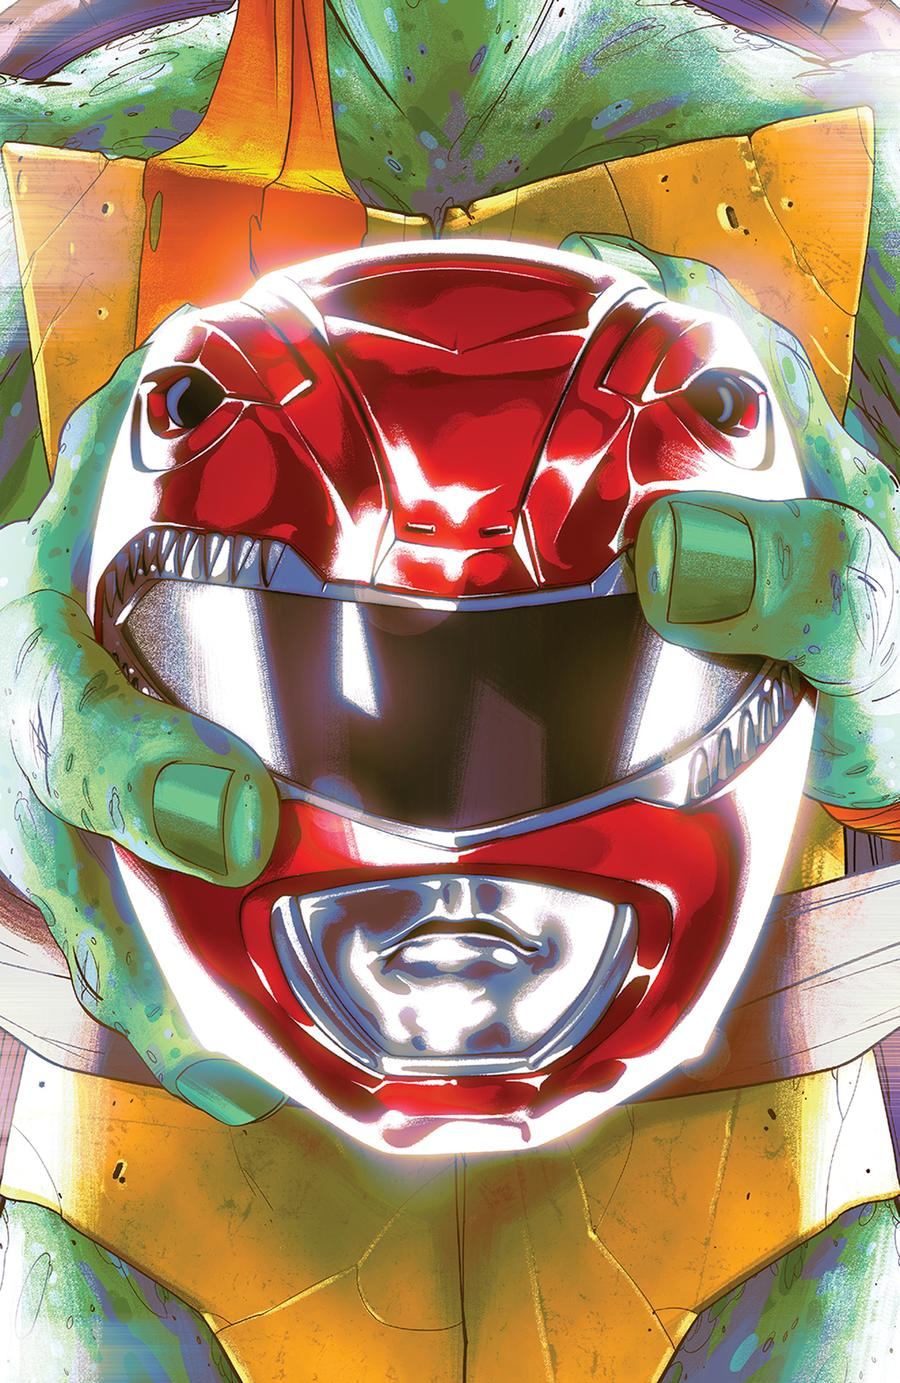 Mighty Morphin Power Rangers Teenage Mutant Ninja Turtles #1 Cover C Variant Goni Montes Cover